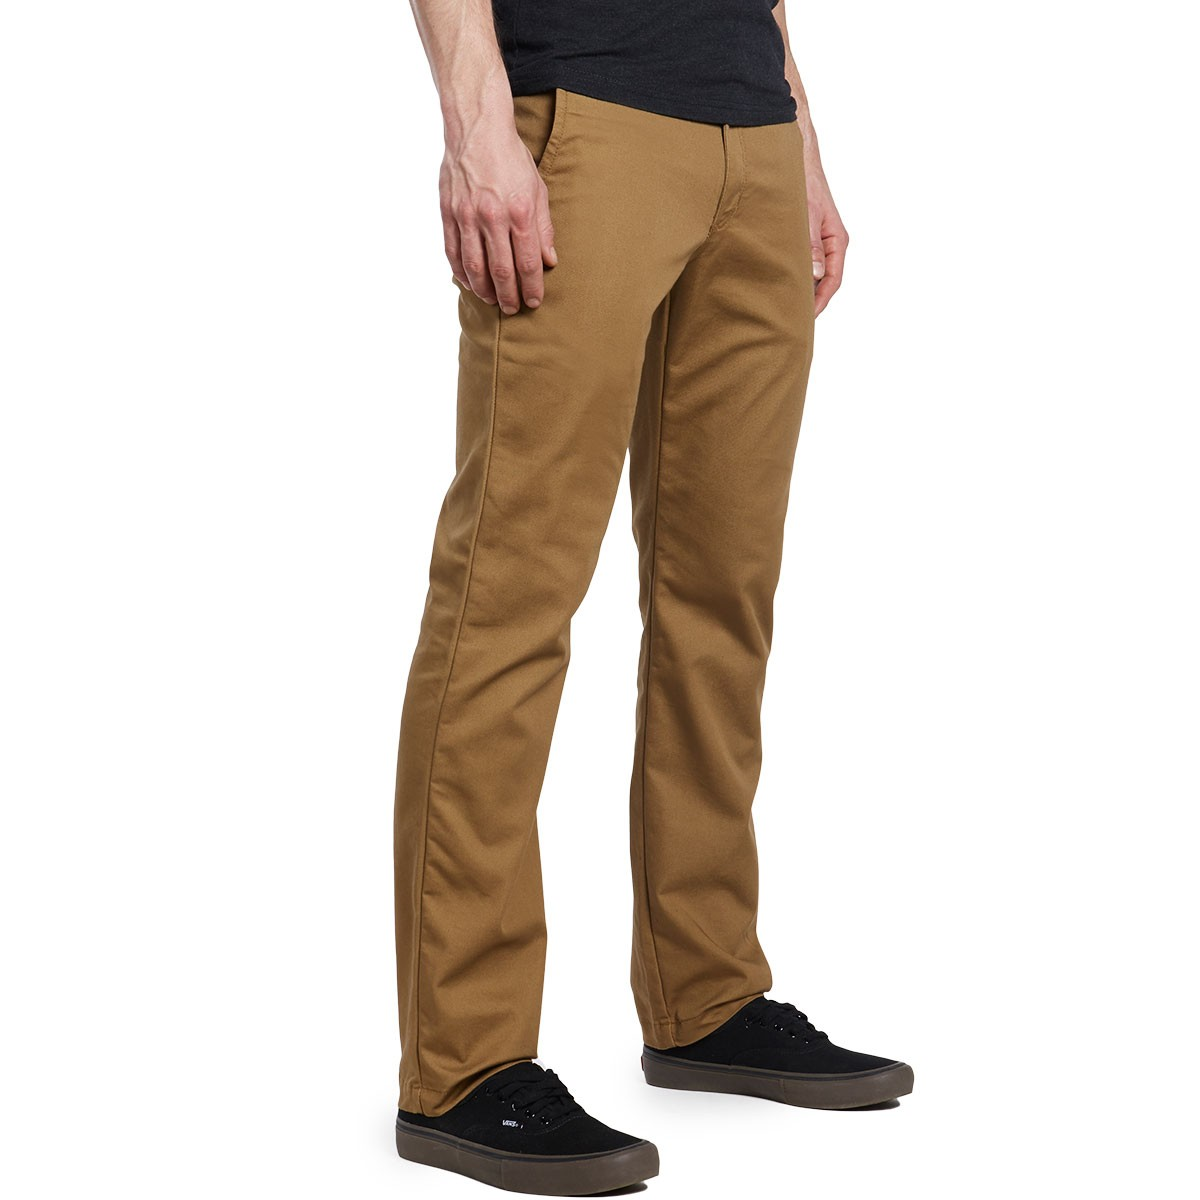 d234f492a30d94 Vans Authentic Chino Stretch Pants